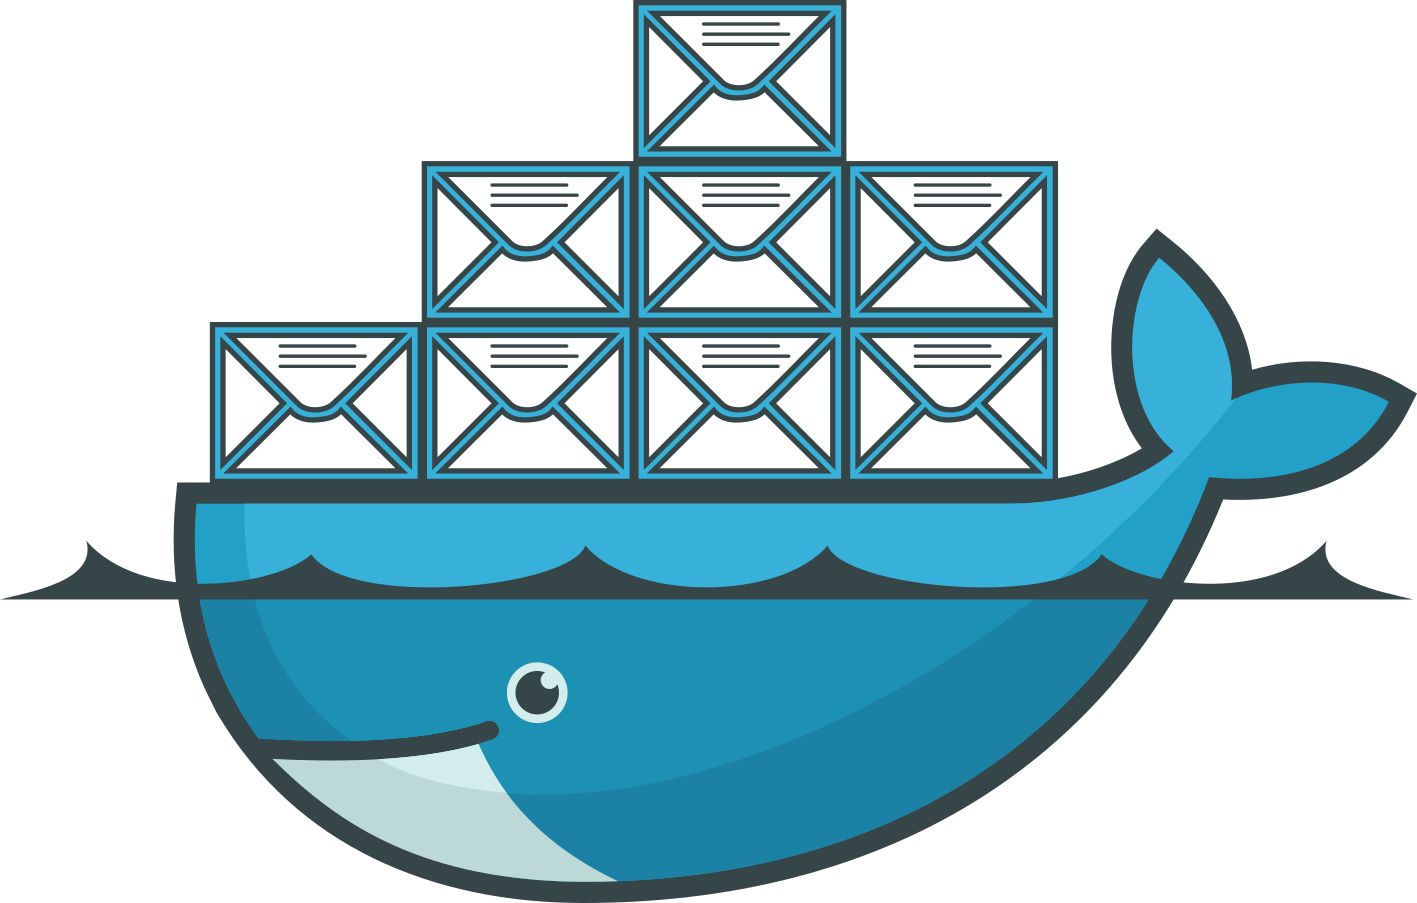 Sending Mails from within a Docker Container